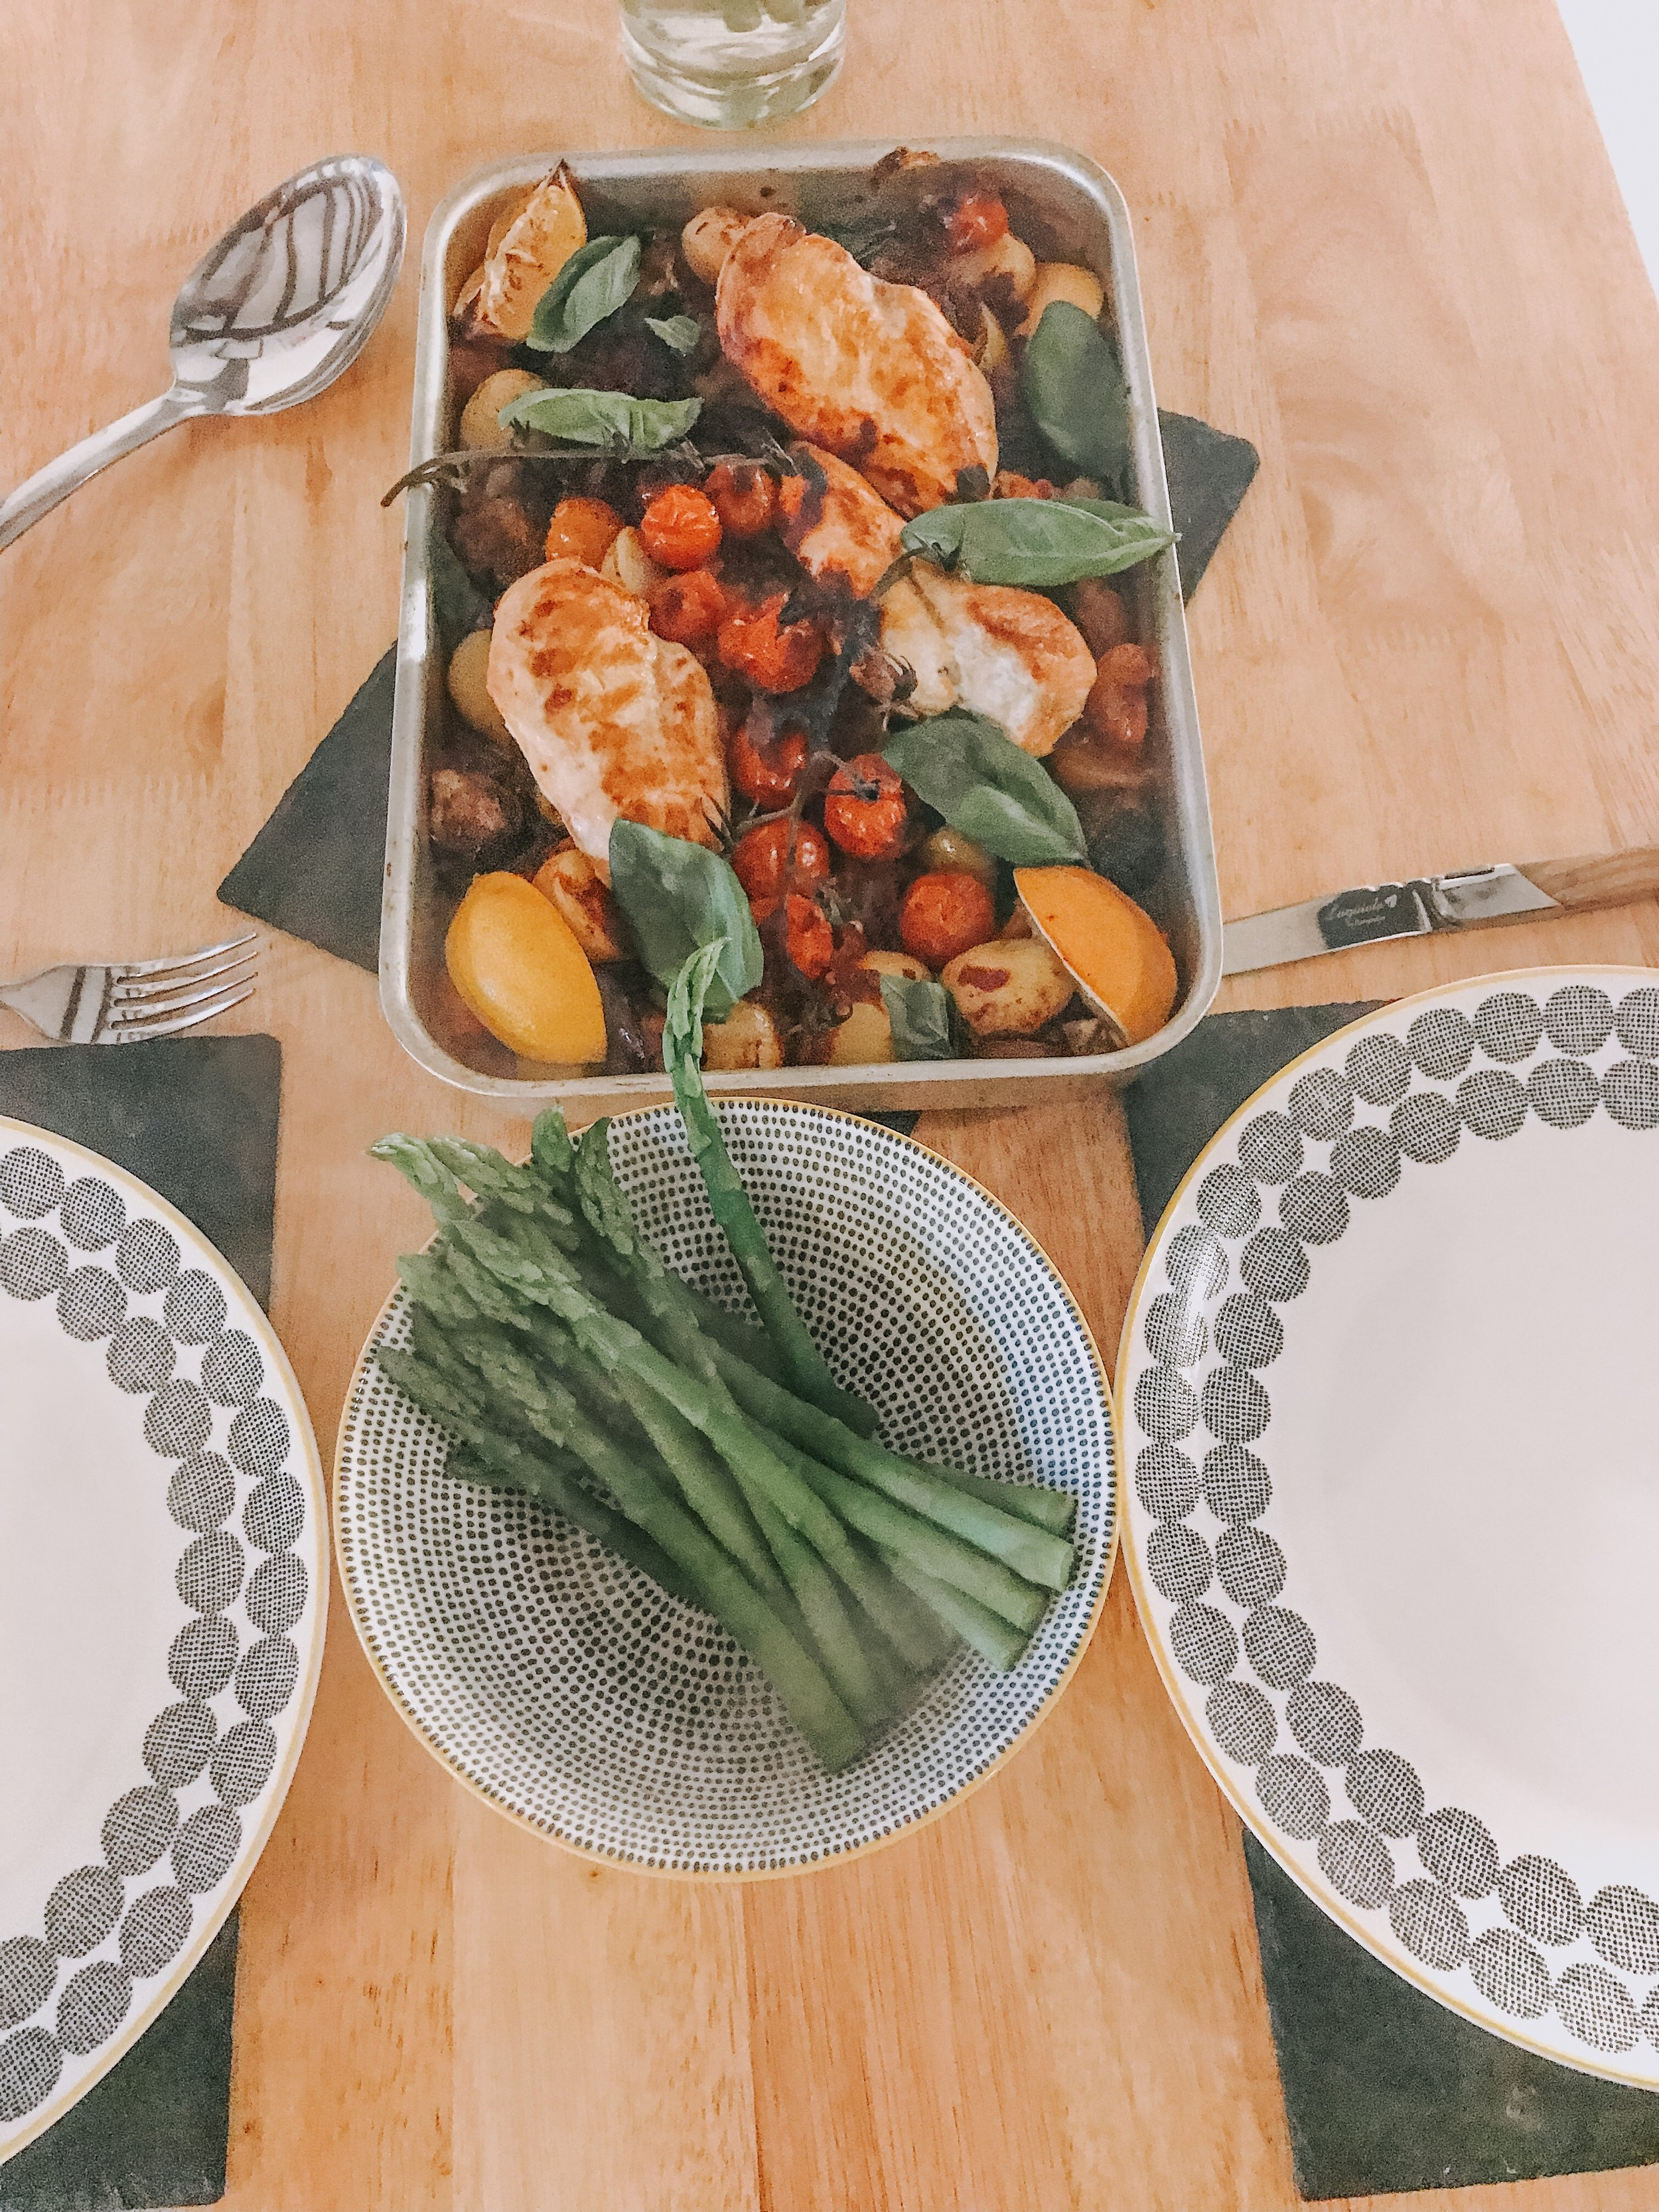 Essex food blog. Chicken and asparagus.